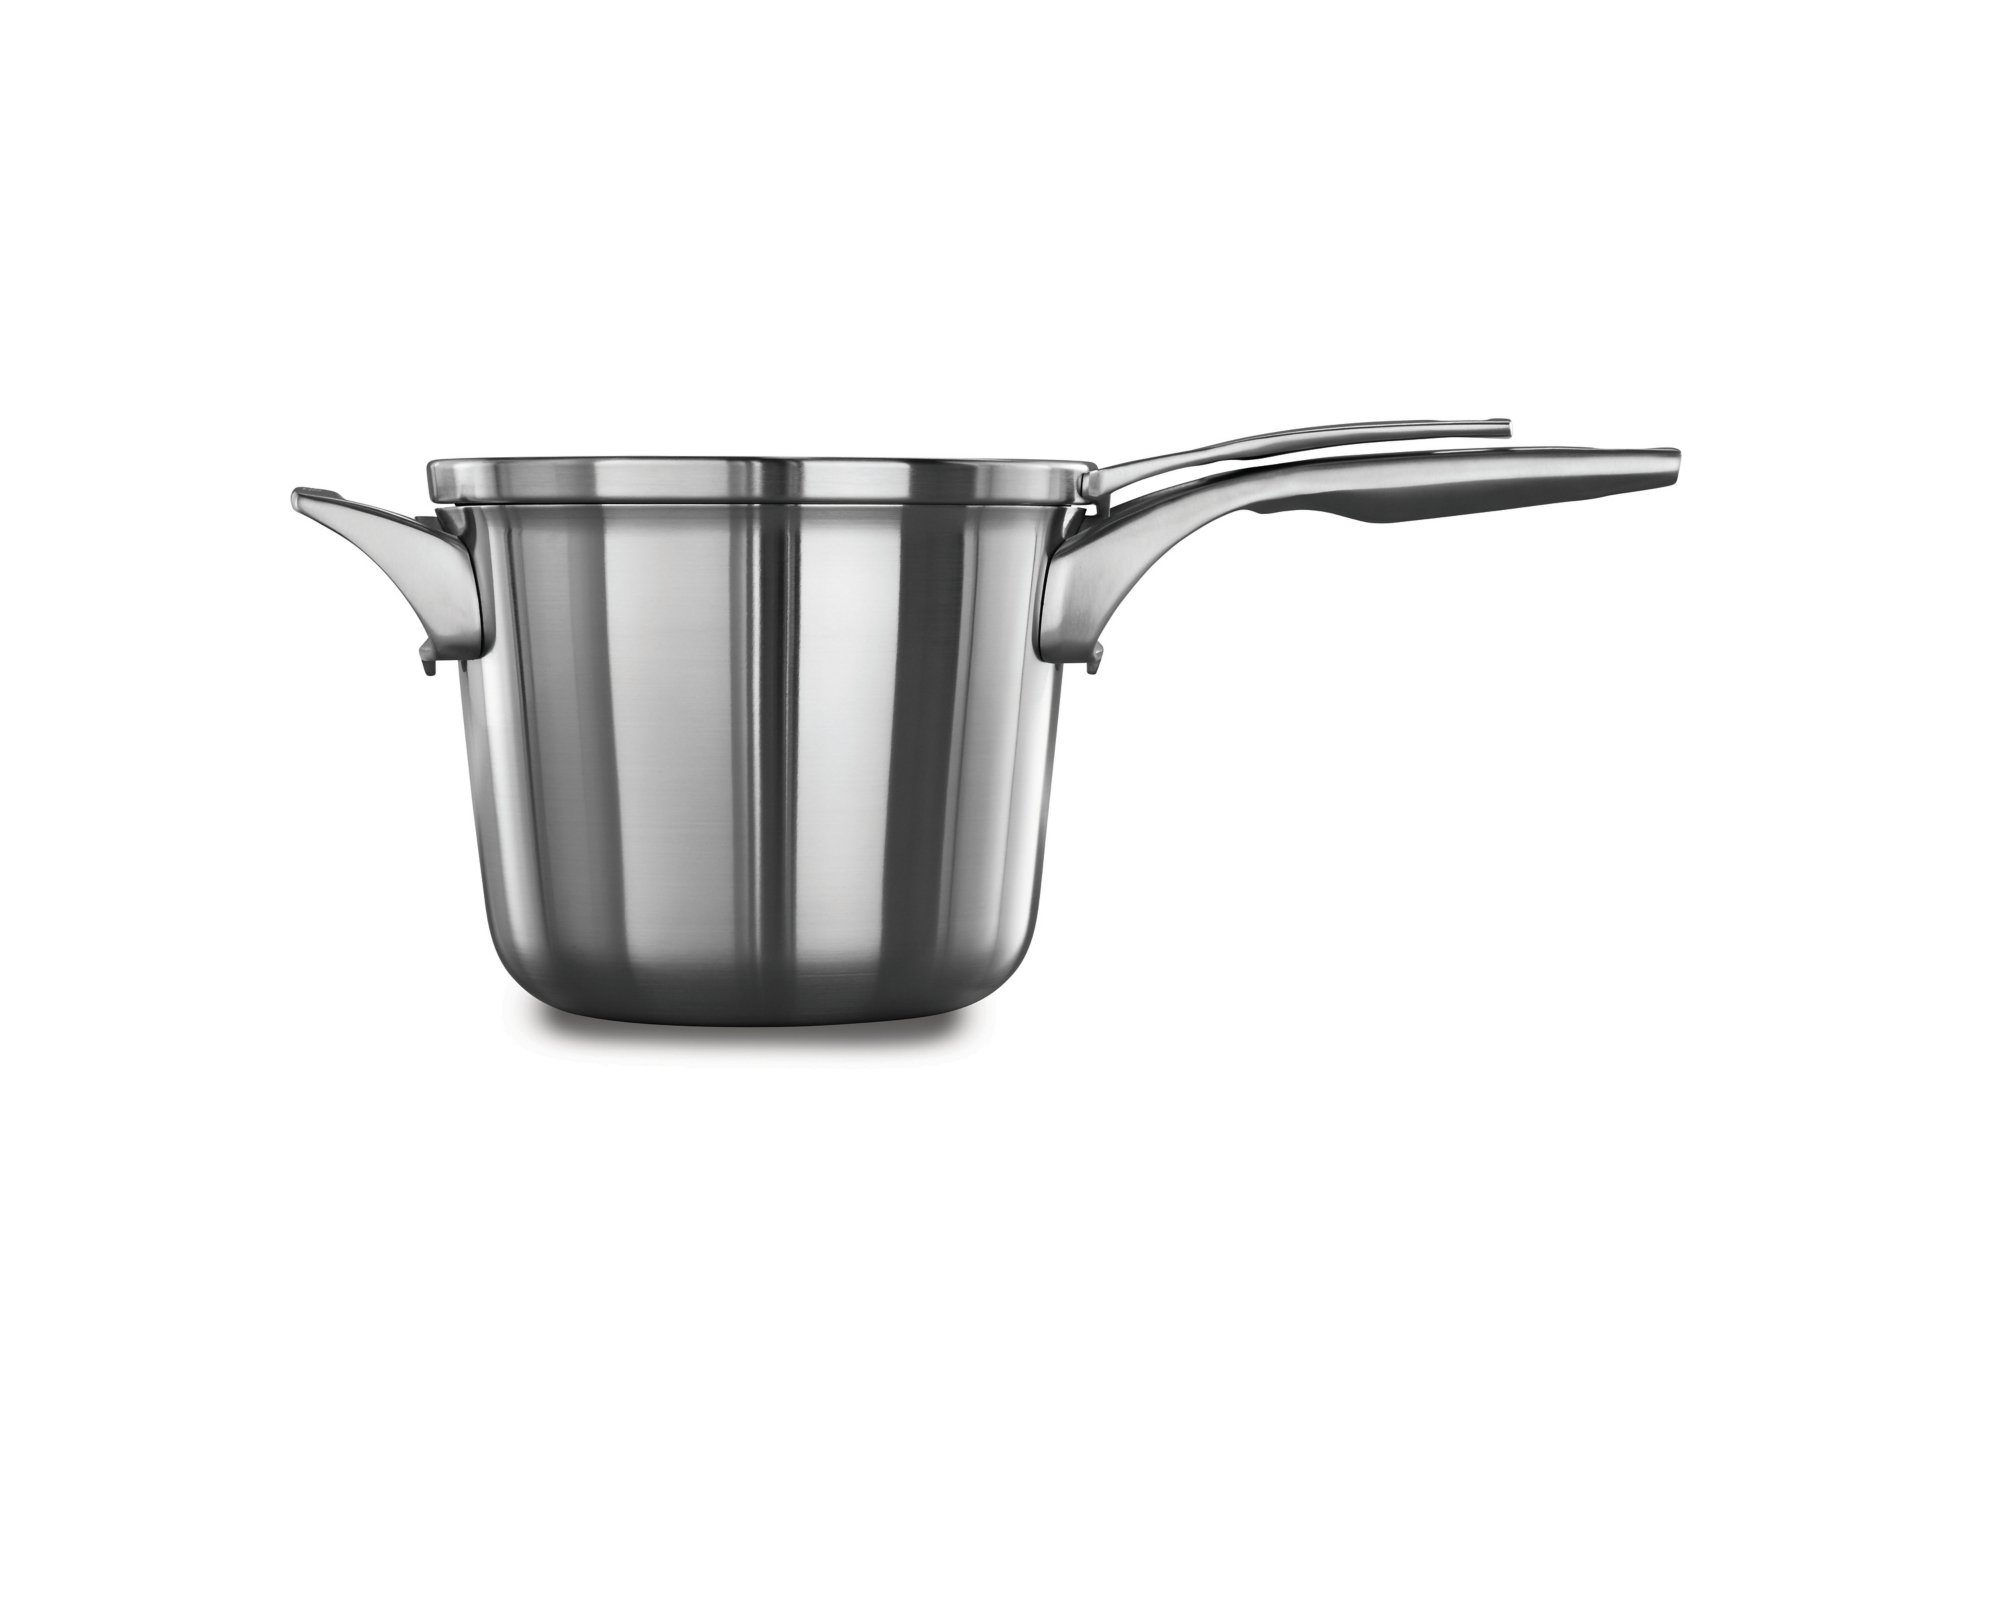 Calphalon Premier™ Space Saving Stainless Steel 4.5 qt. Sauce Pan with Cover